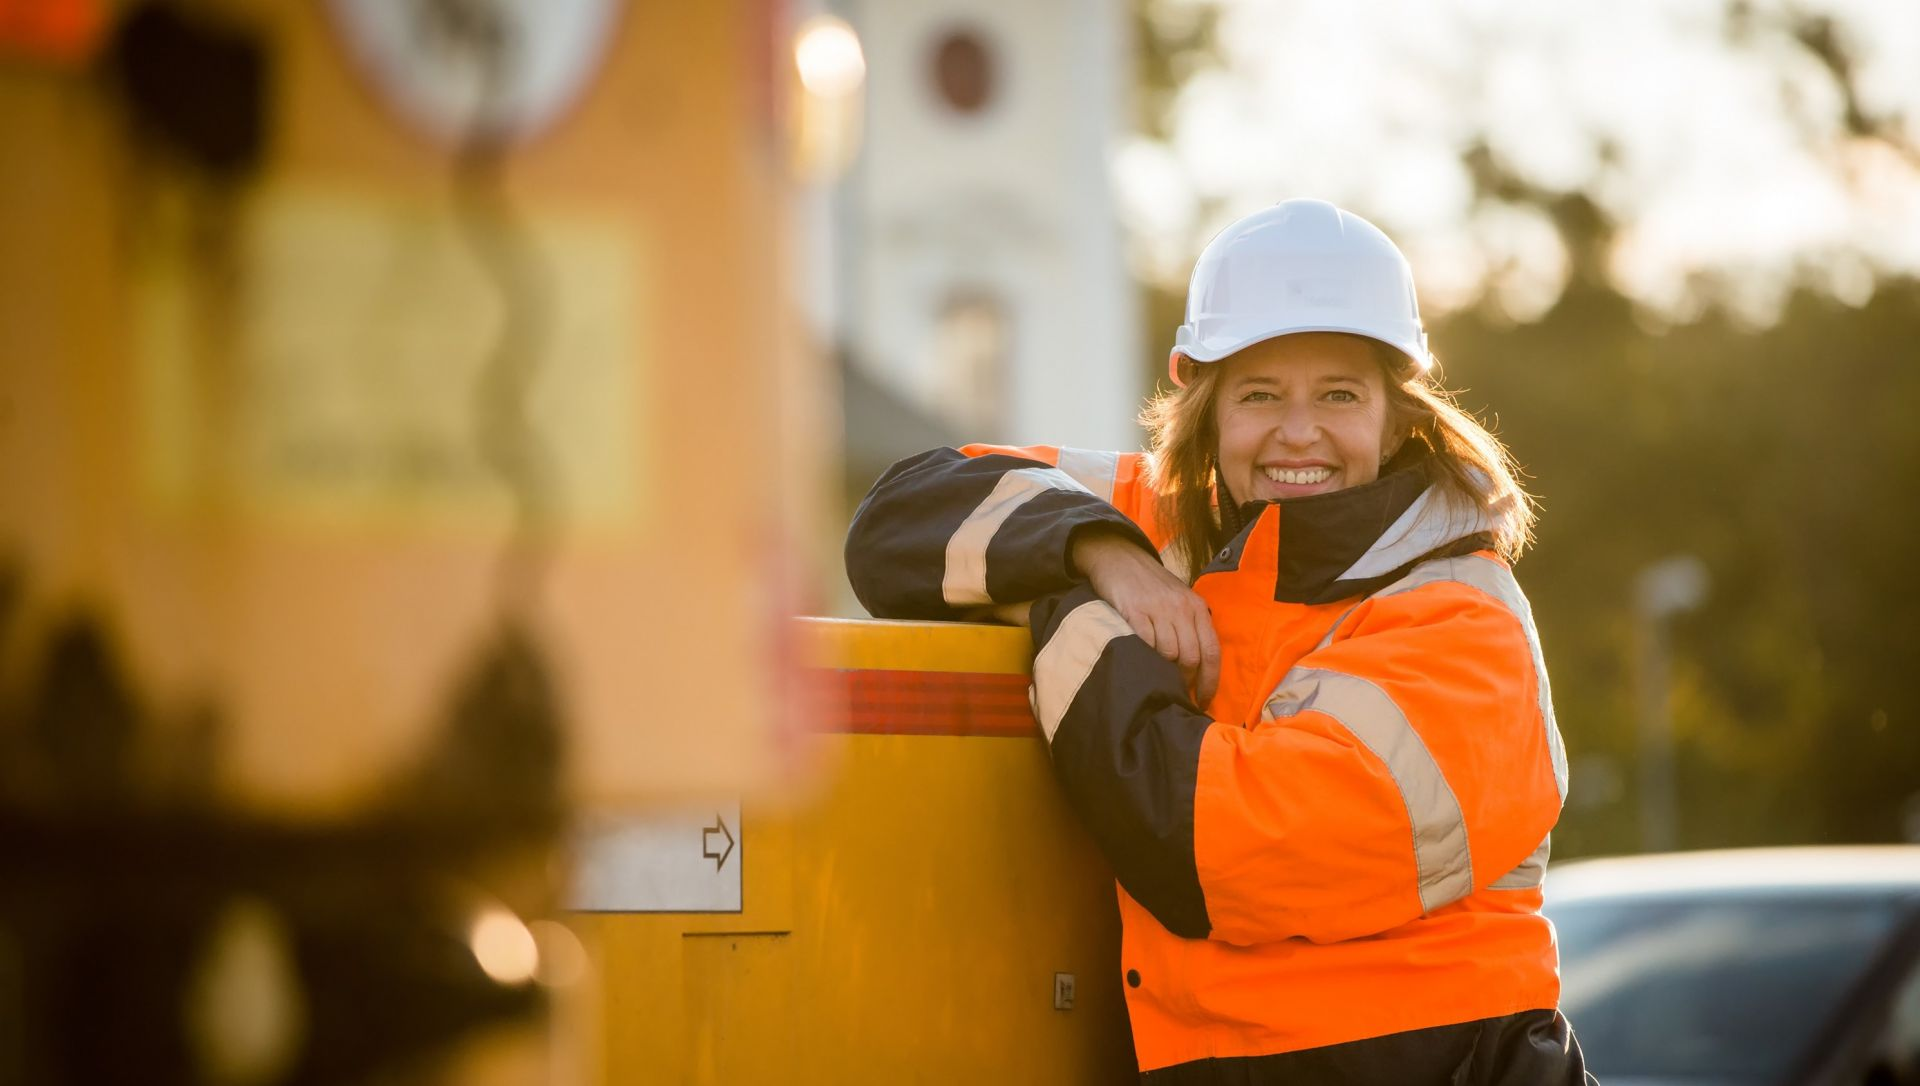 Construction lady poses for a photo